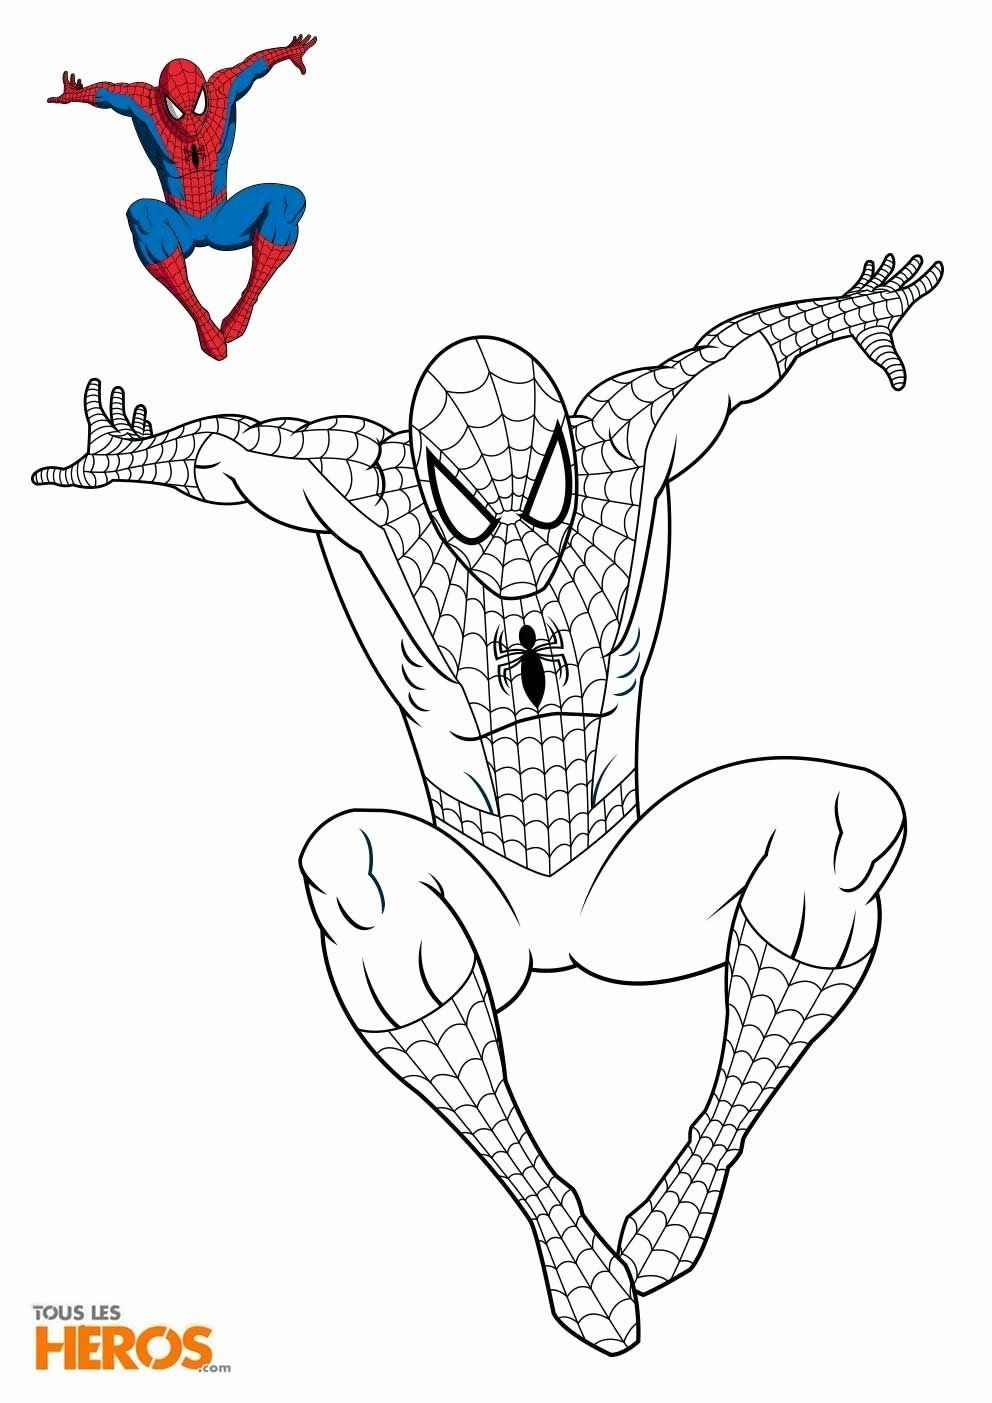 Kids Coloring Pages Avengers Avengers Coloring Pages Spiderman Coloring Superhero Coloring Pages